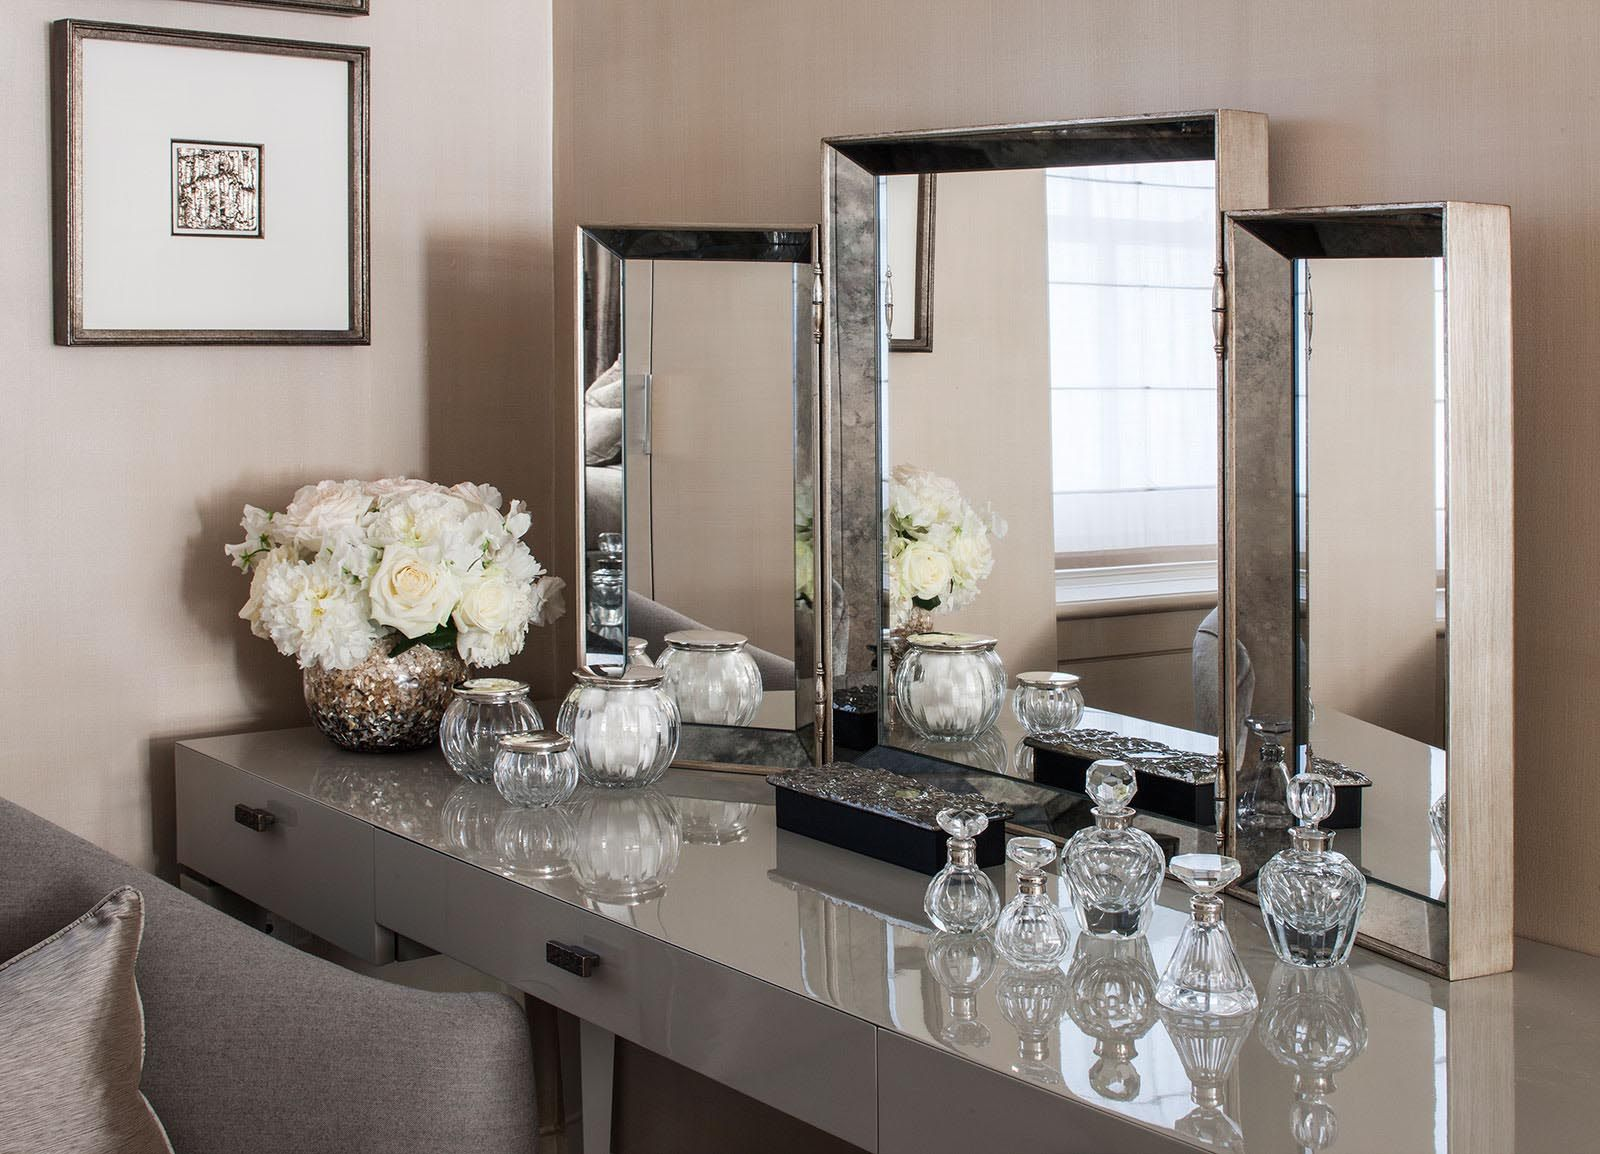 Bayswater Family Home - Dressing Table Interior Design